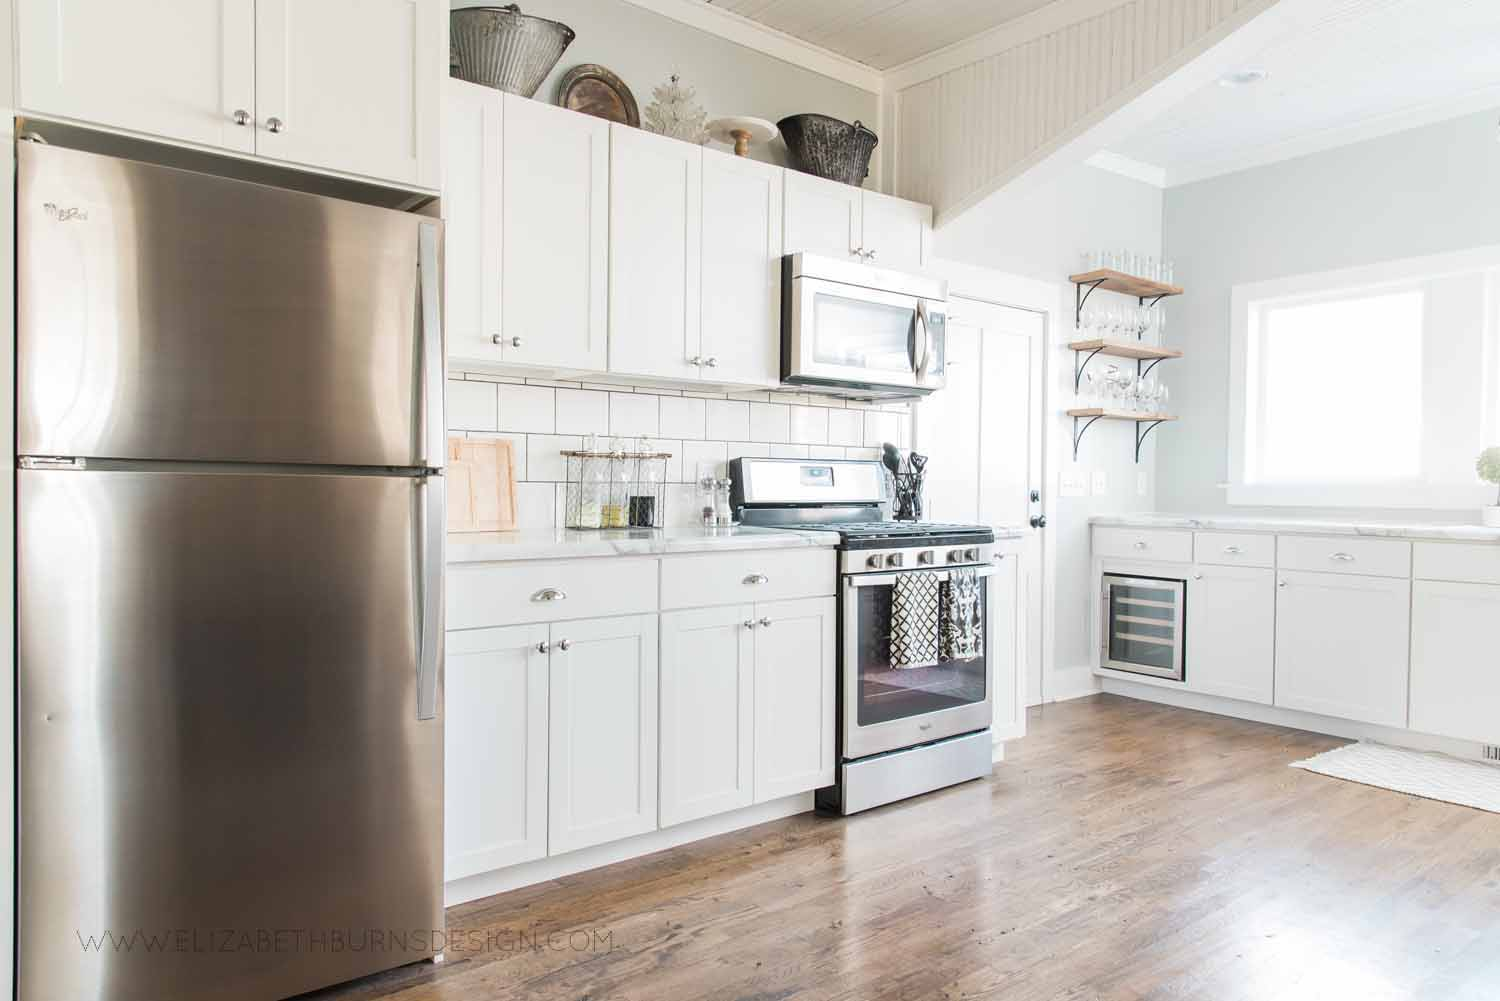 Elizabeth Burns Design Raleigh Interior Designer  Farmhouse Fixer Upper Cottage Renovation, Sherwin Williams Silver Strand SW 7057 White Shaker Cabinets Formica Marble Counters Kitchen (2).jpg